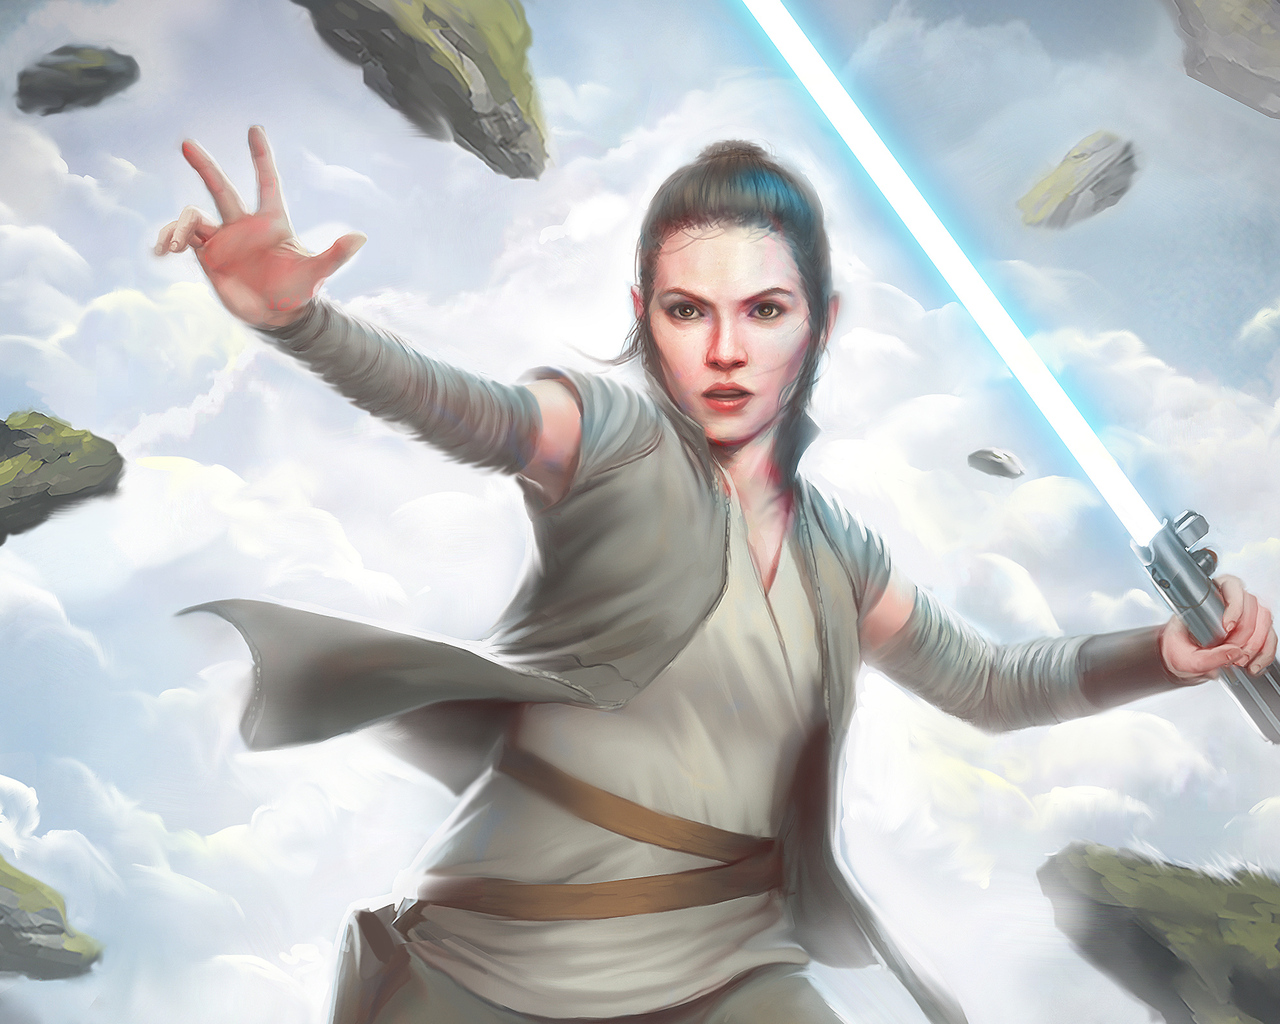 rey-light-saber-art-gw.jpg